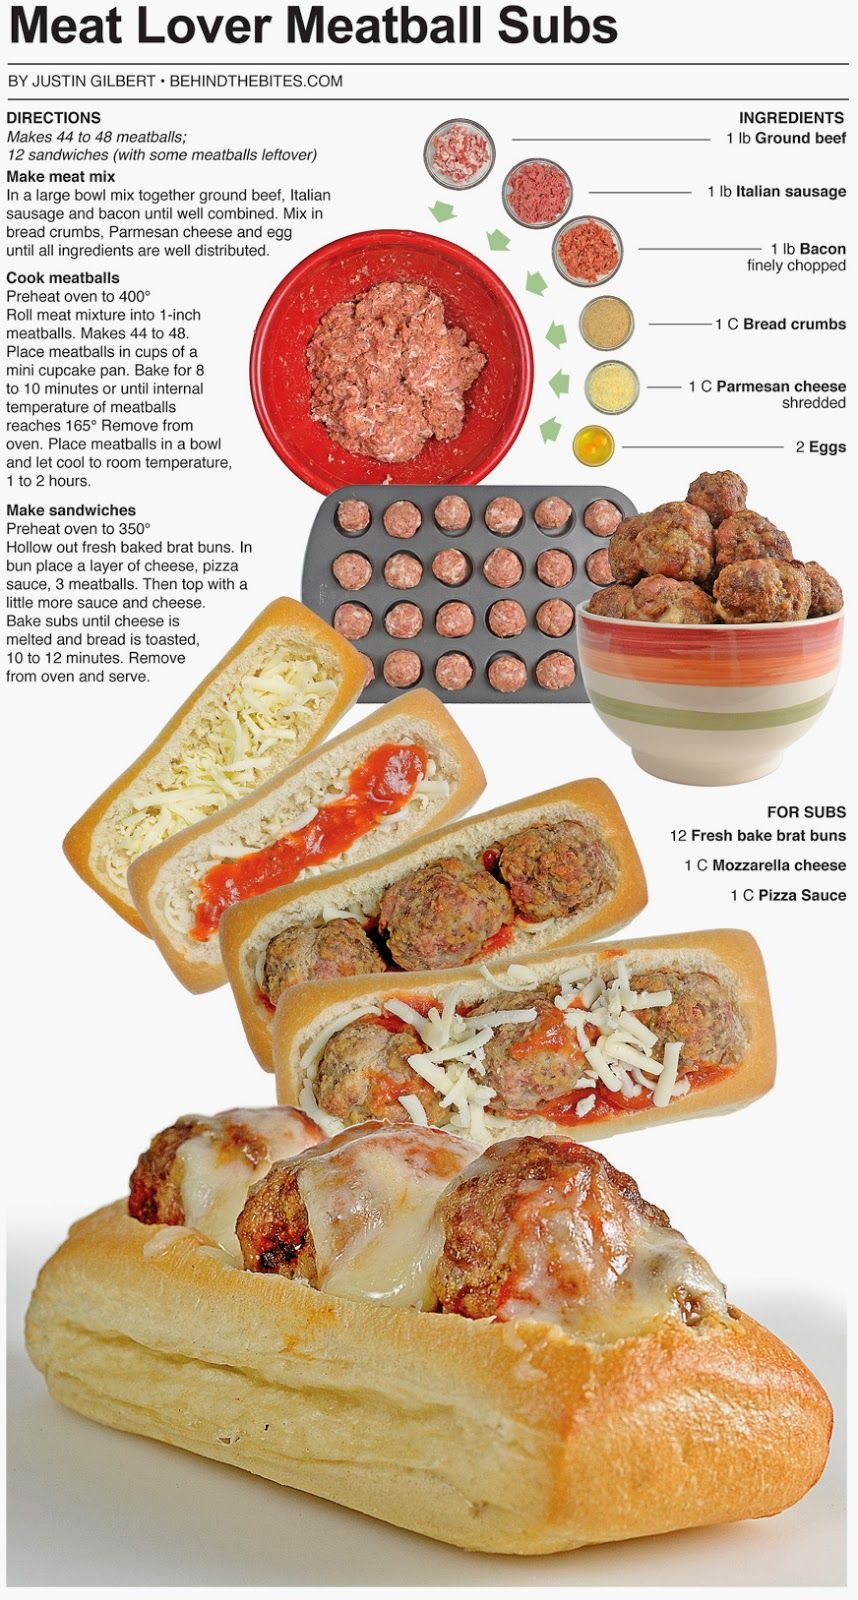 Meat Lovers Meatball Subs Not So Healthy Foods